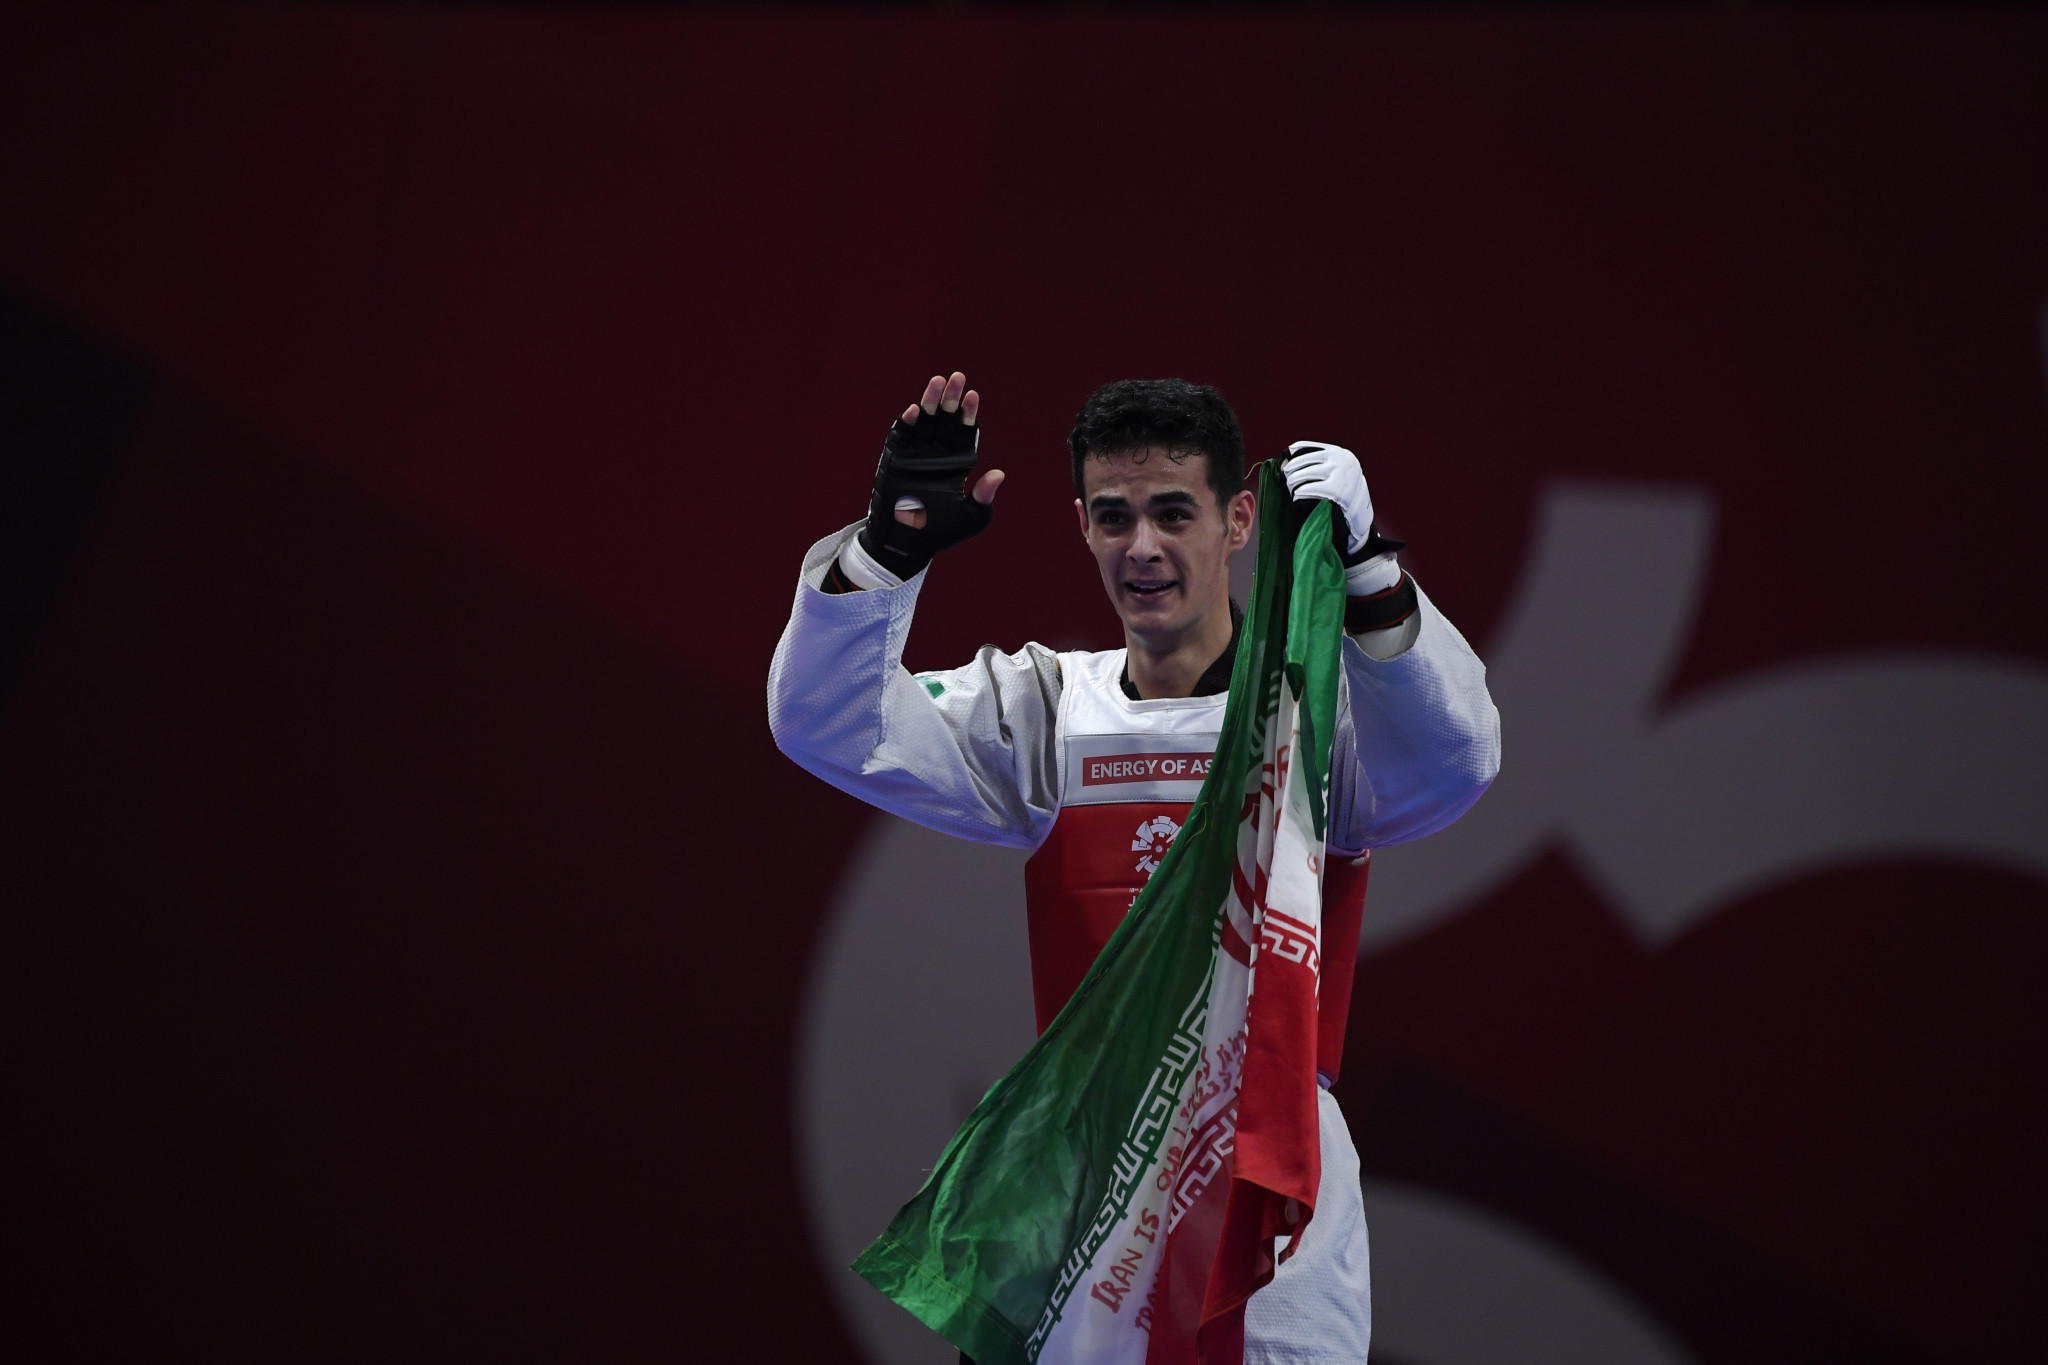 Mirhashem Hosseini is one of two Iranian taekwondo players to have already qualified for the Olympics ©Getty Images